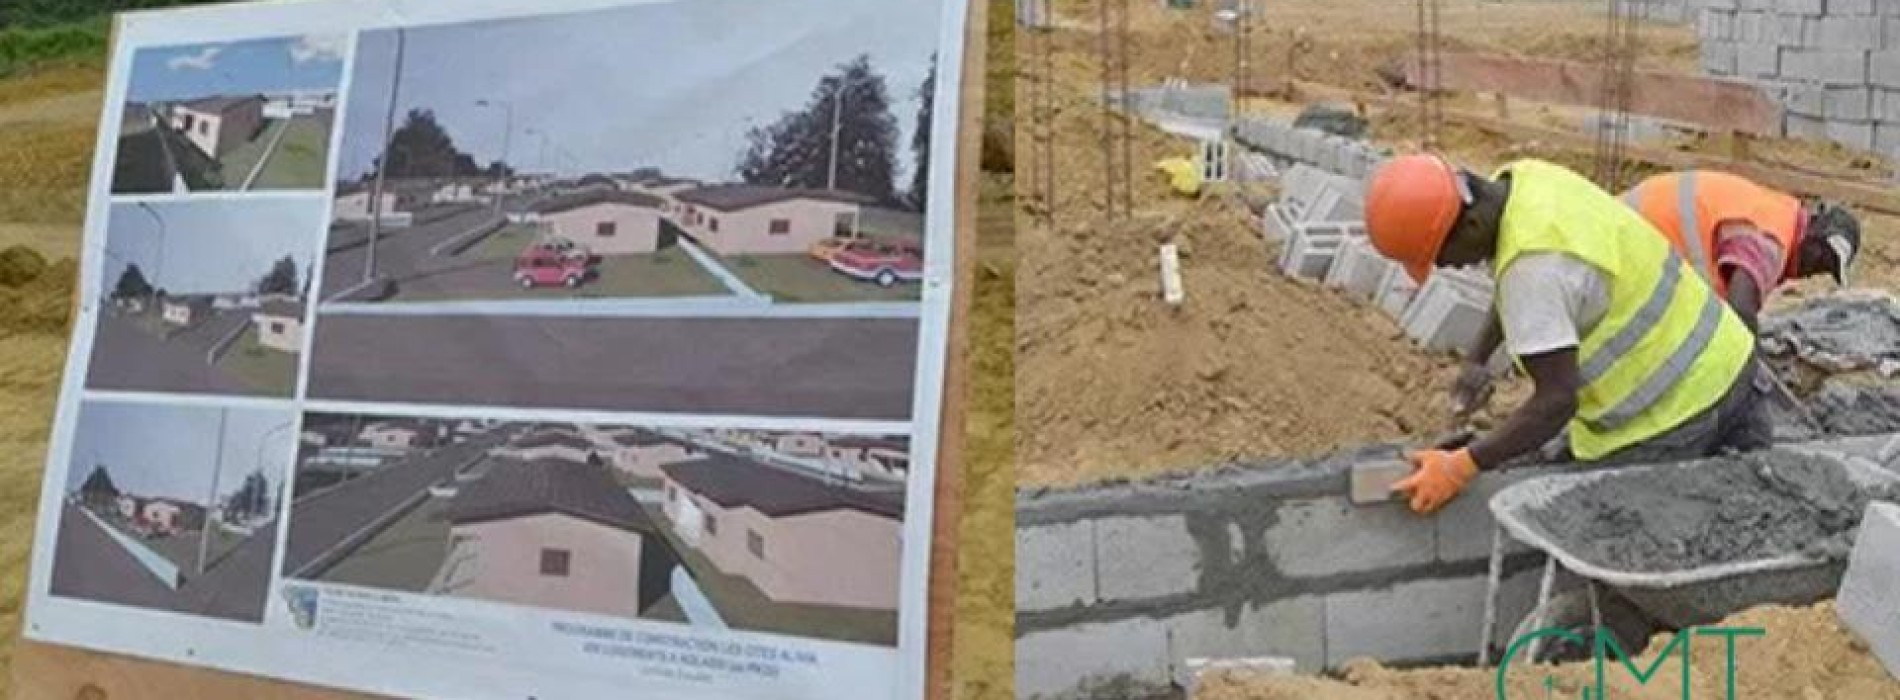 Gabon 5.2 million euros in the construction of social houses